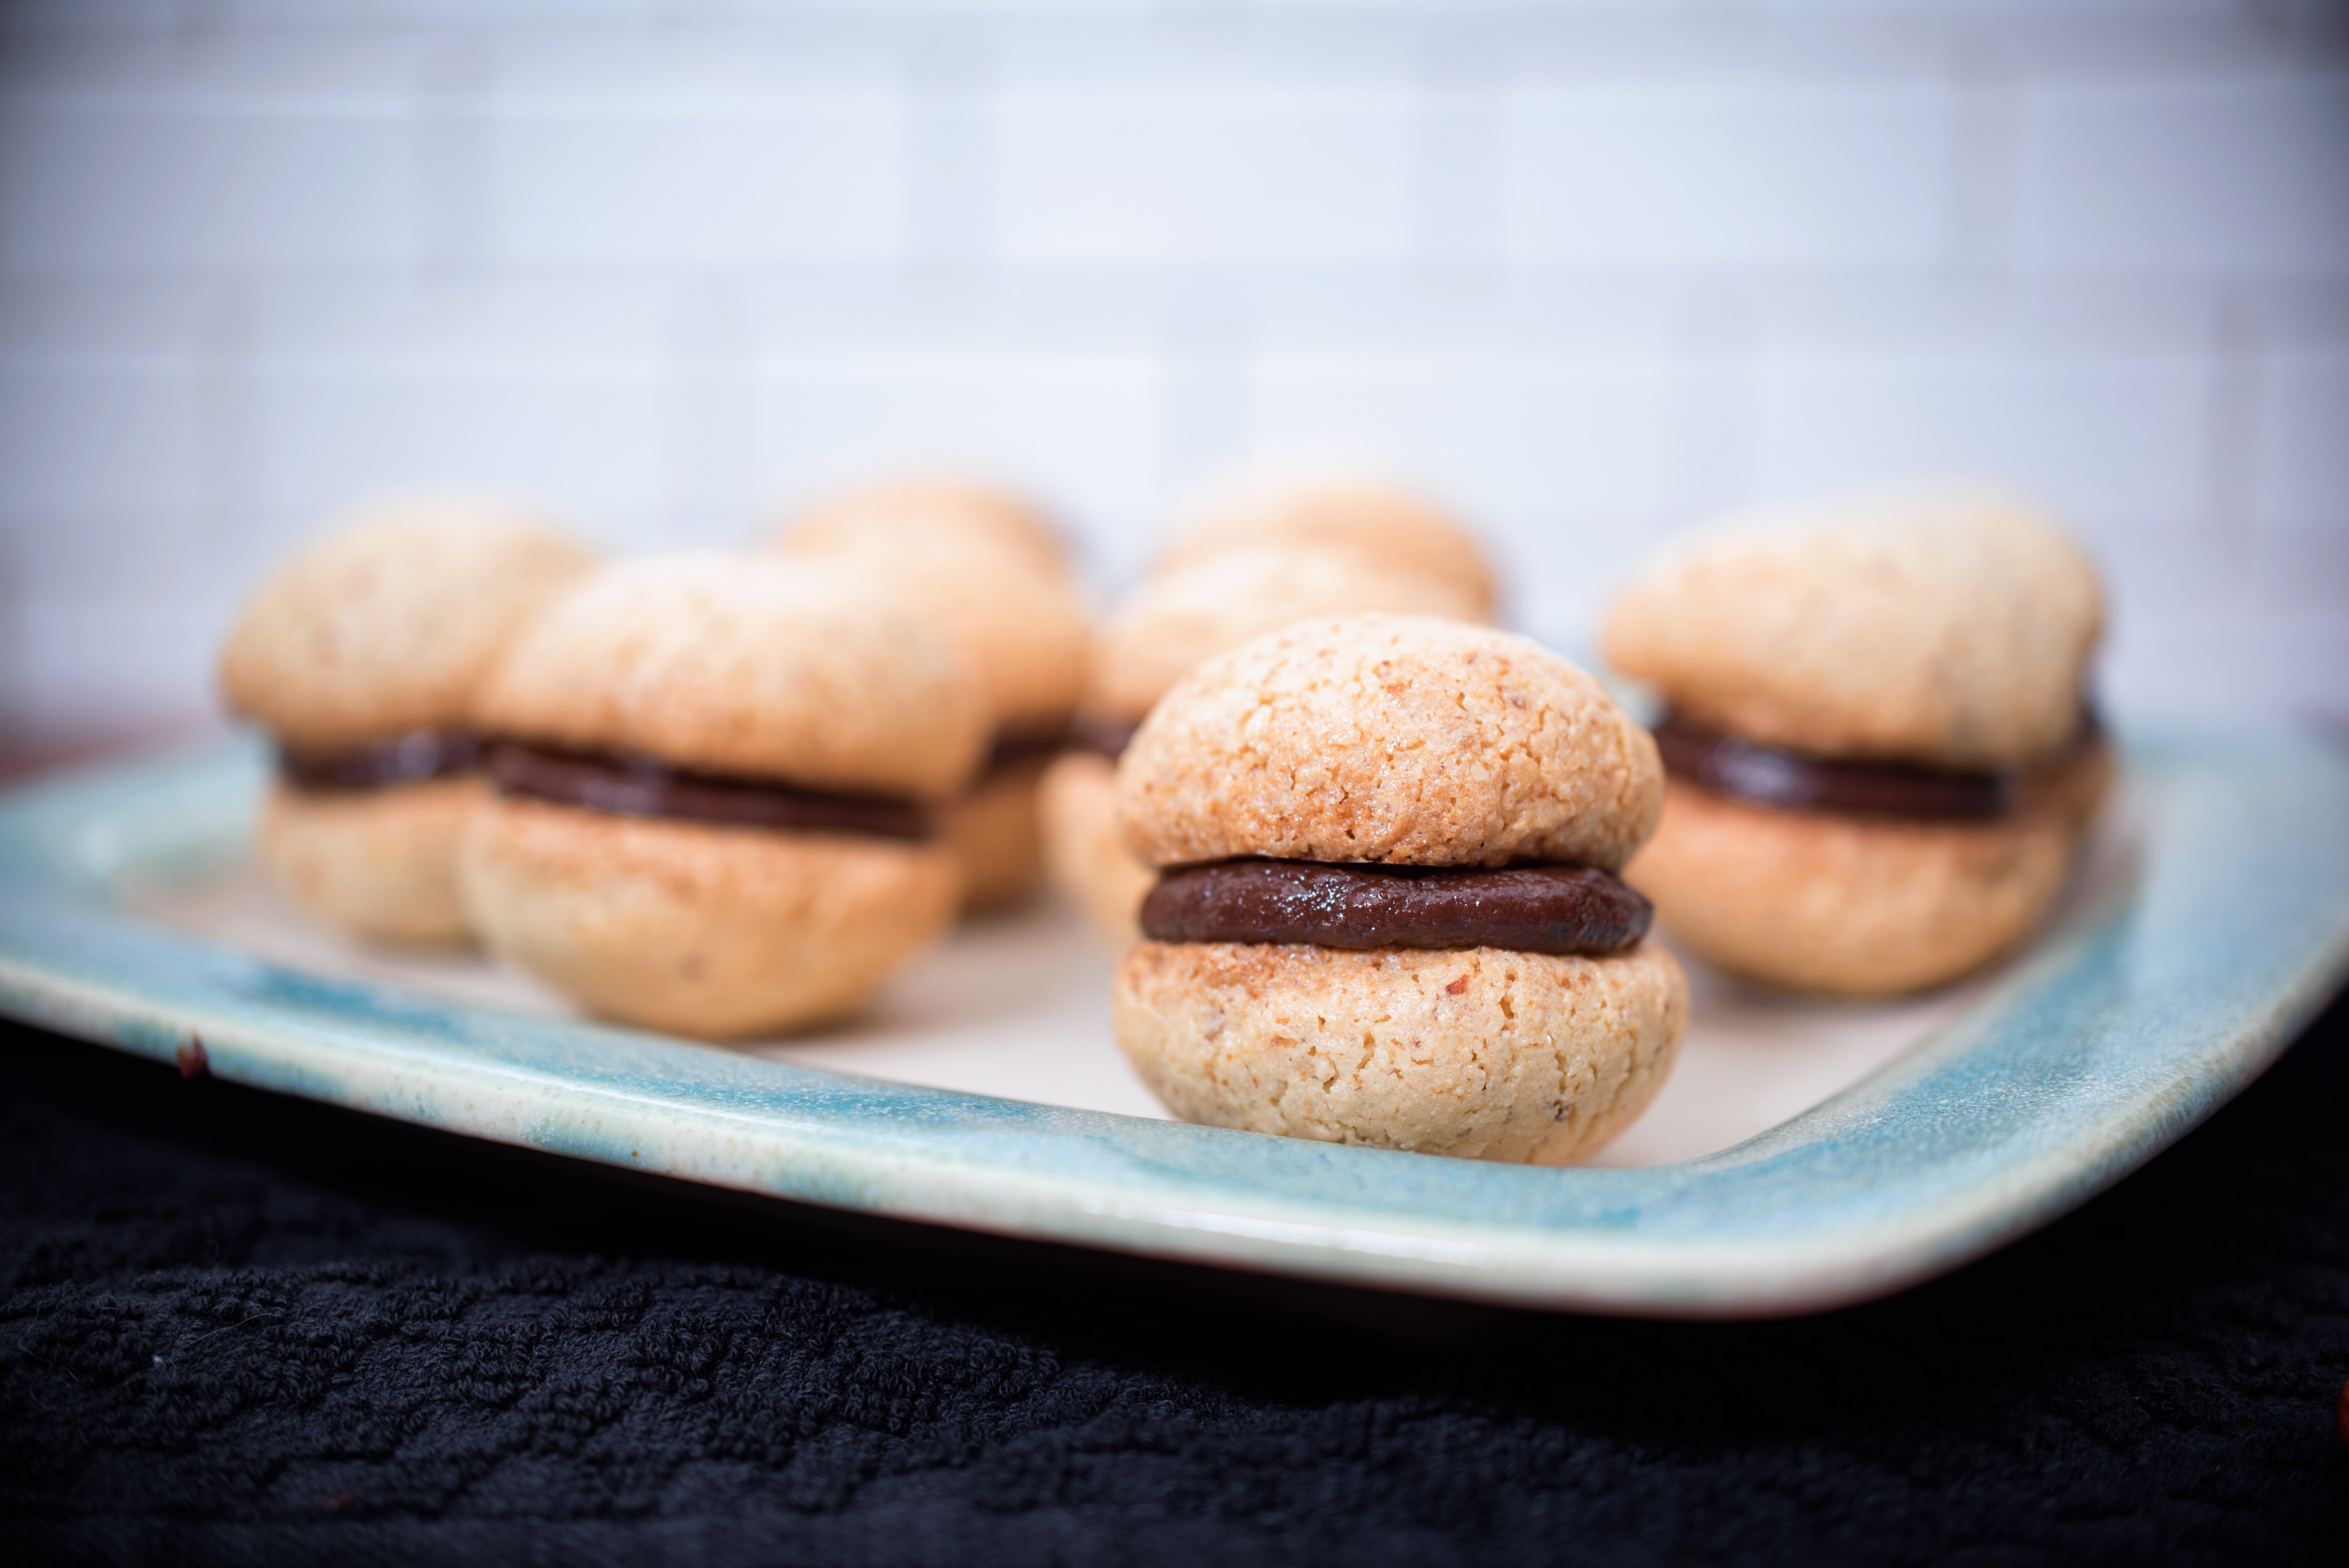 Small plate of chocolate fresh macaron pastries